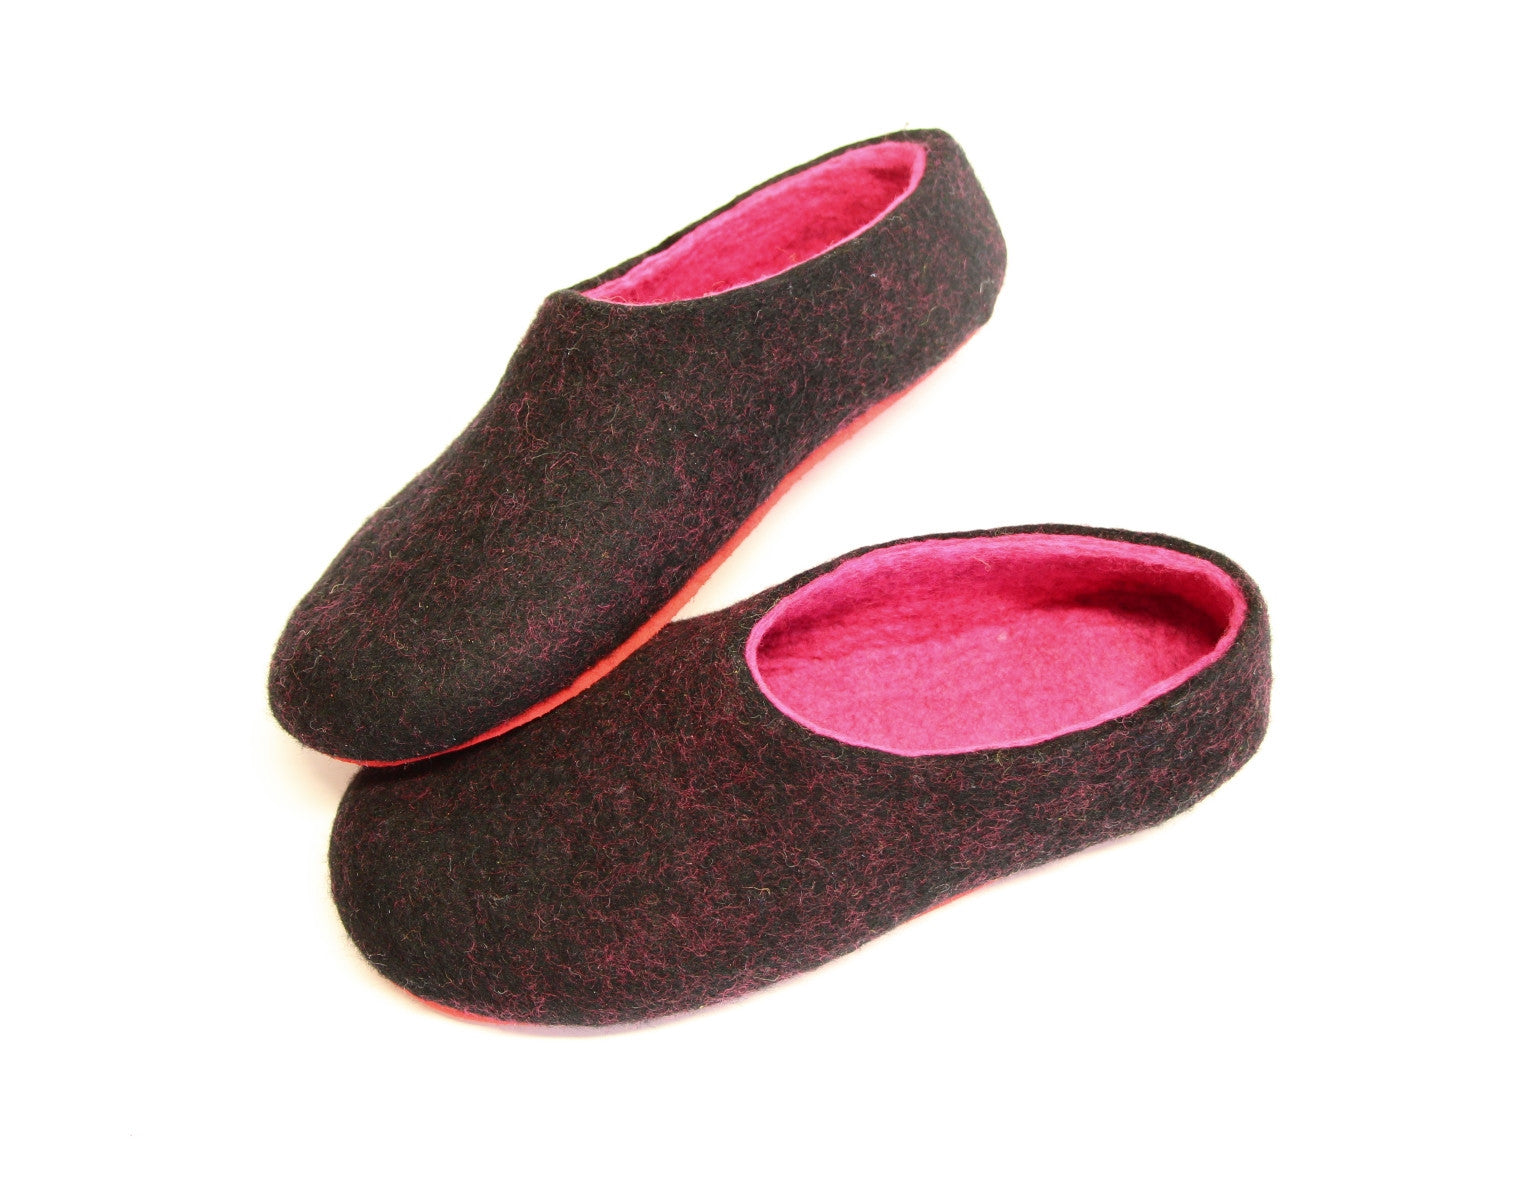 Womens Felt Slippers Black Fuchsia Contrast Sole - Wool Walker  - 1